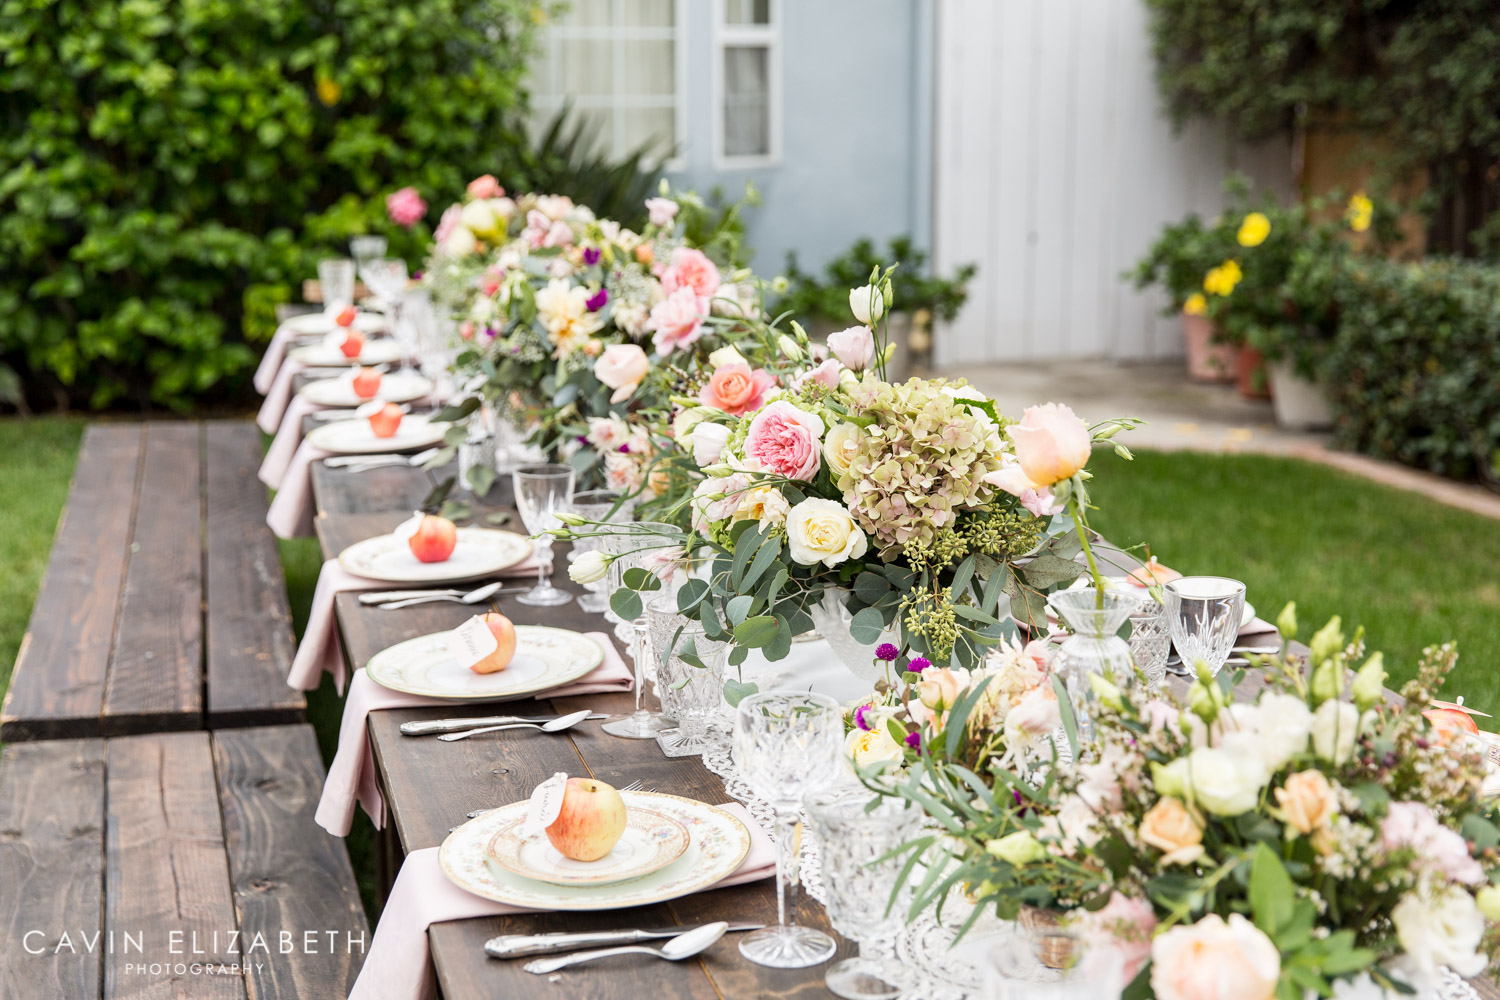 apple place cards for an outdoor bridal shower in san diego with a floral runner